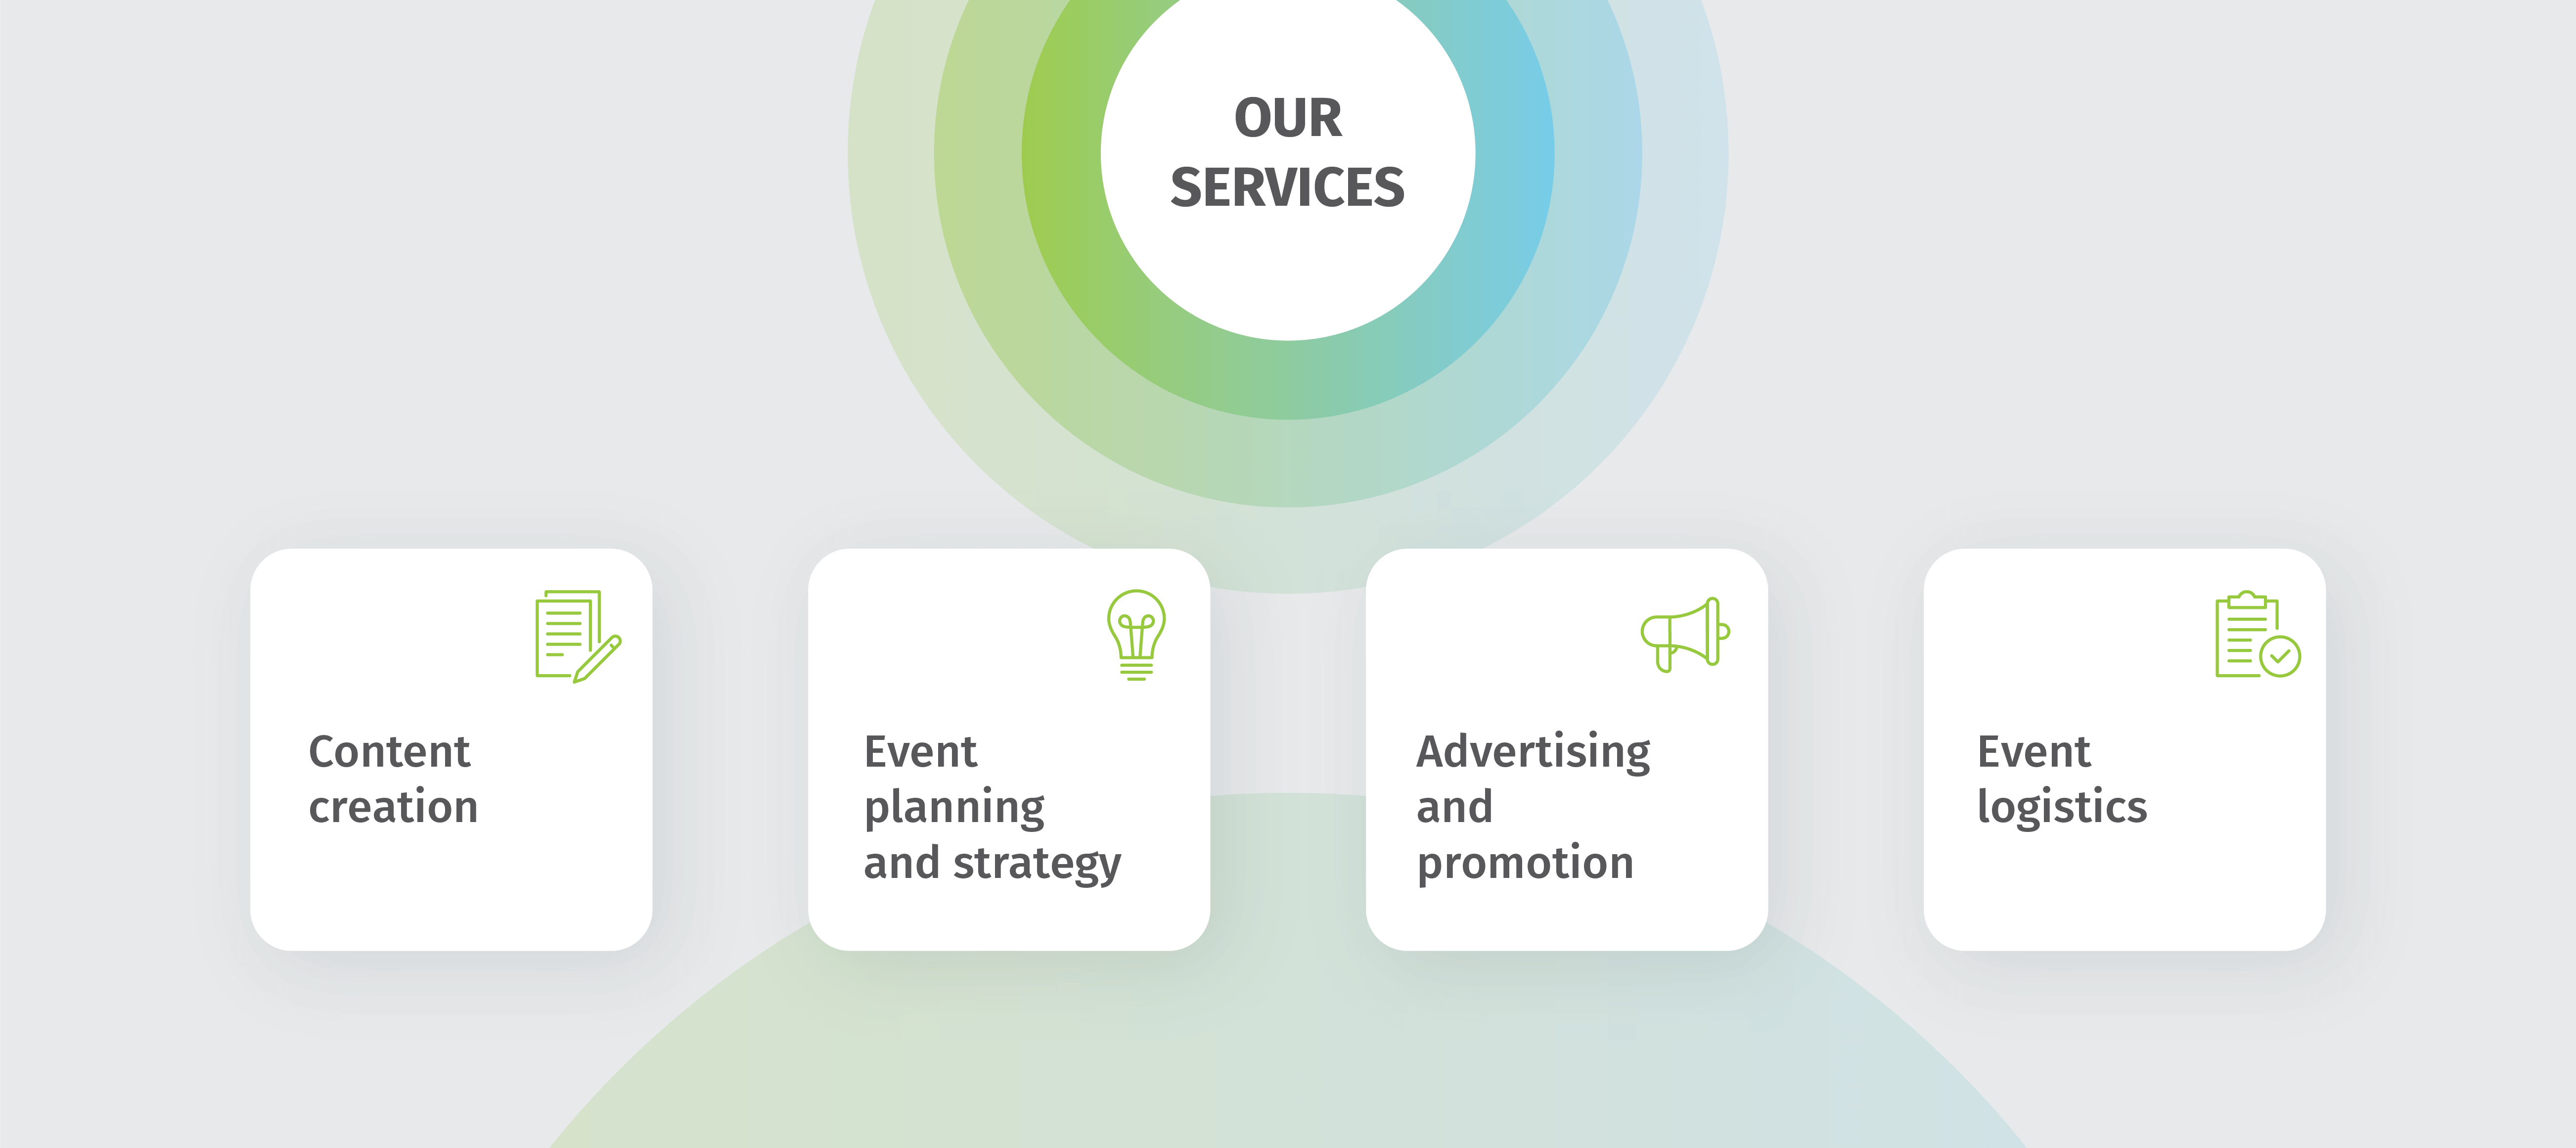 Our Services: Content creation, Event planning and strategy, Advertising and promotion, Even logistics